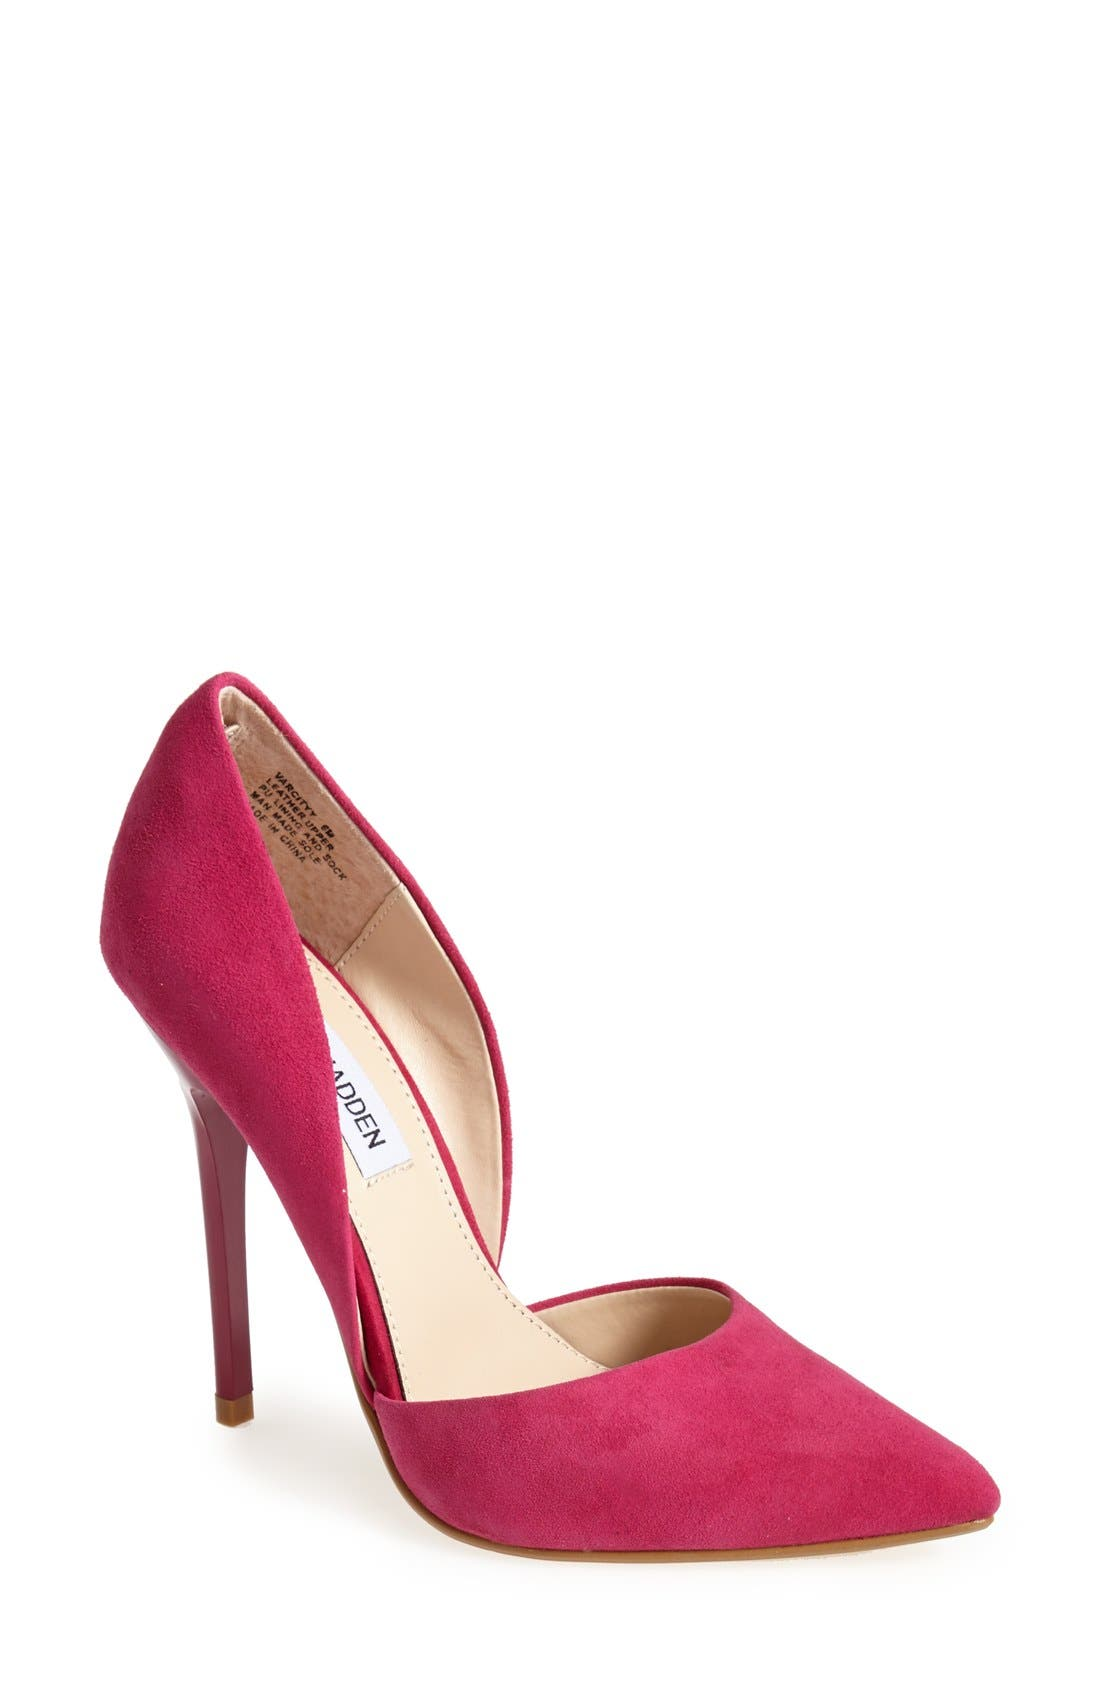 Main Image - Steve Madden 'Varcityy' Pointy Toe Pump (Women)